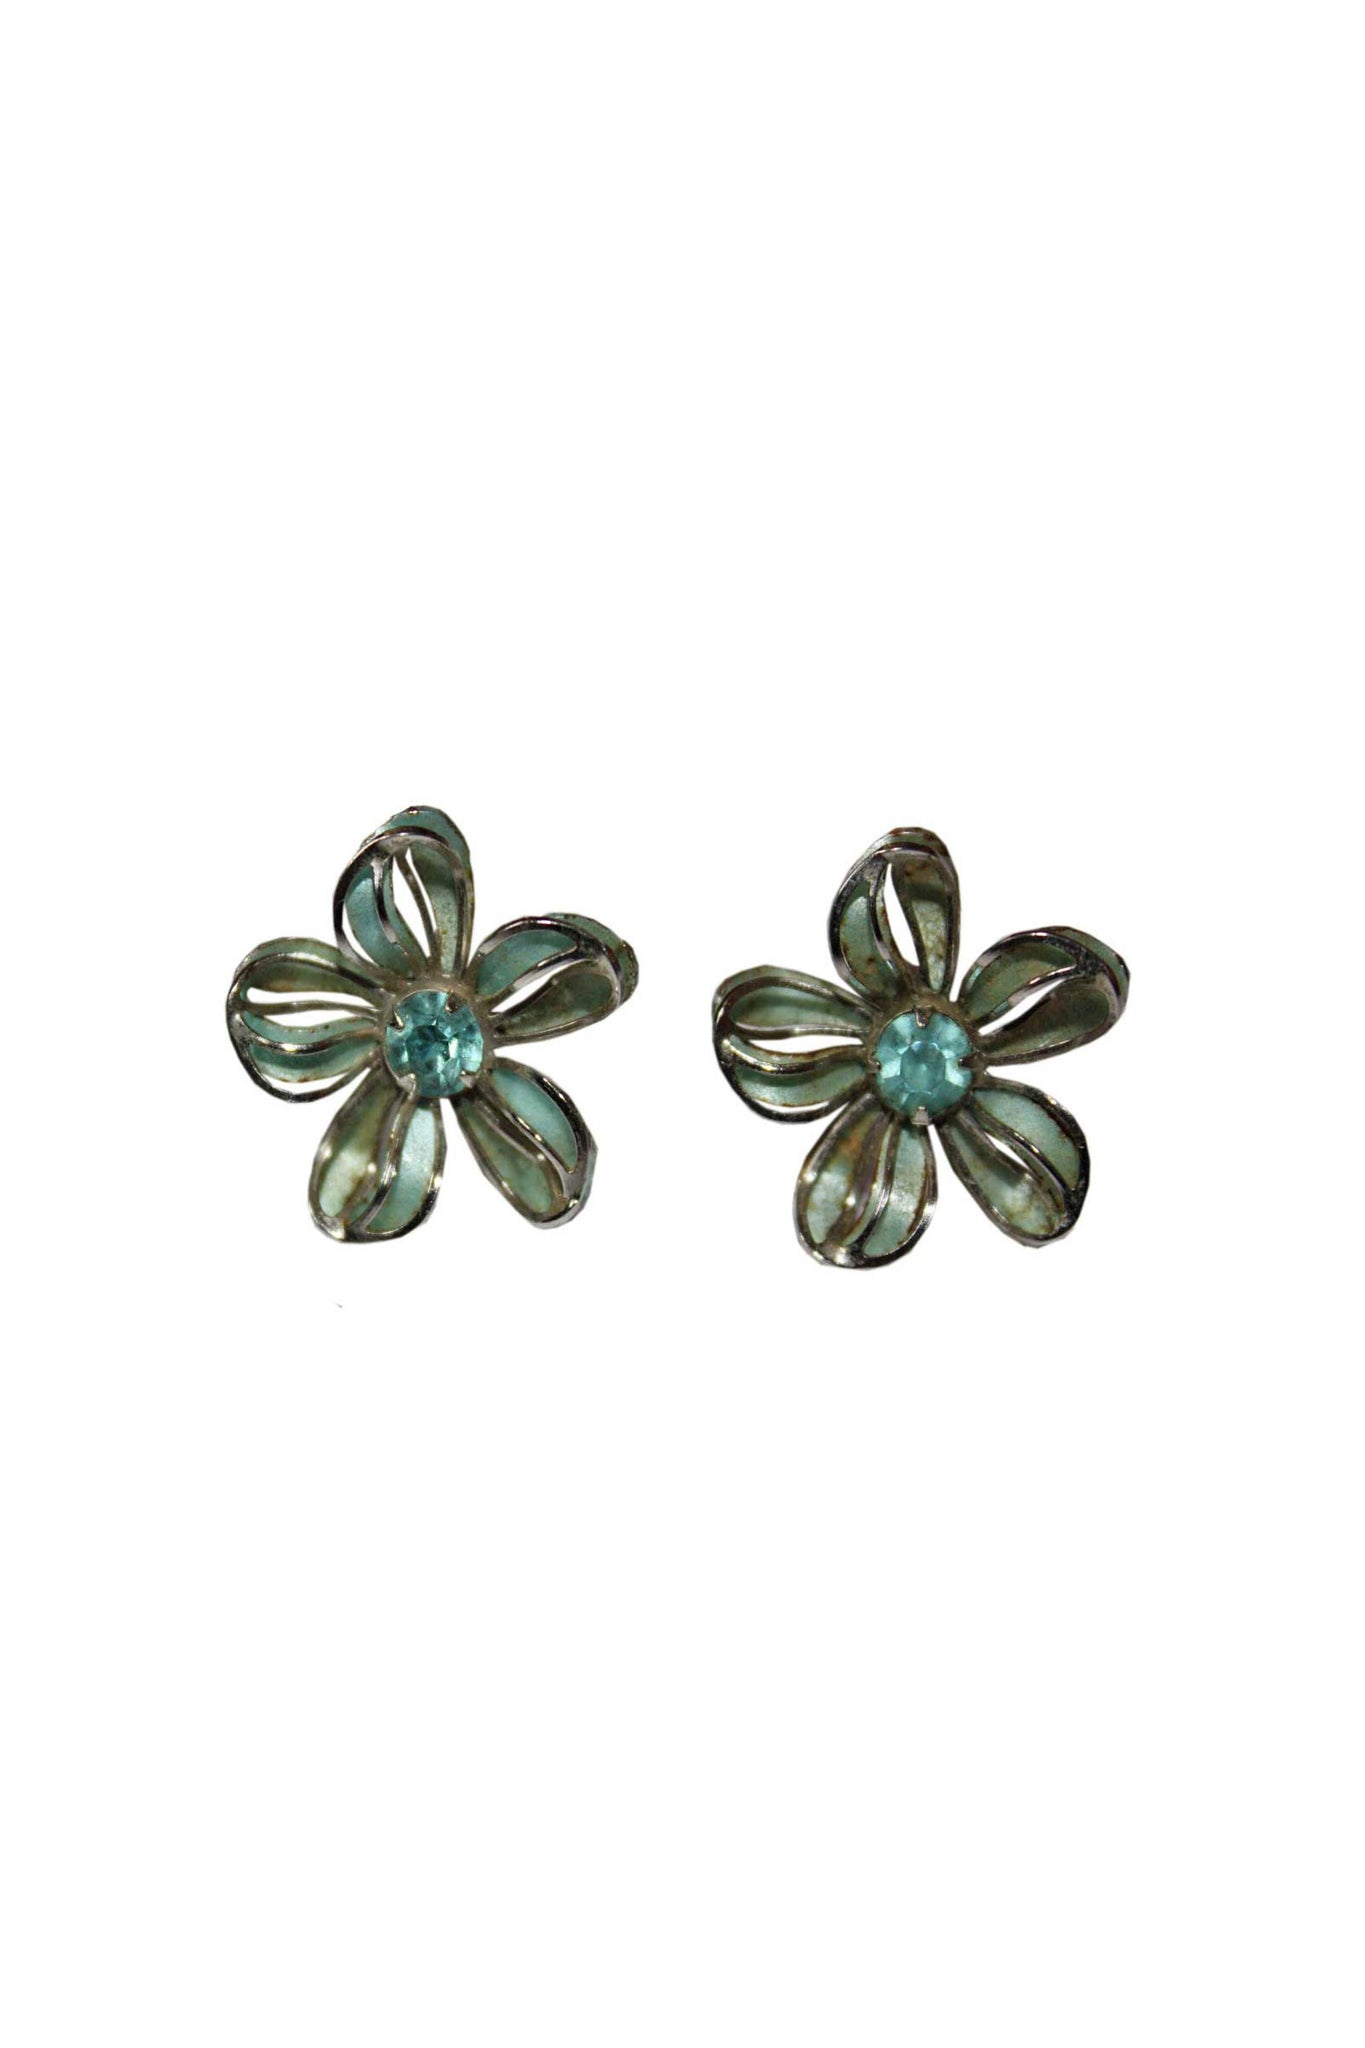 Vintage floral earrings - SoLovesVintage